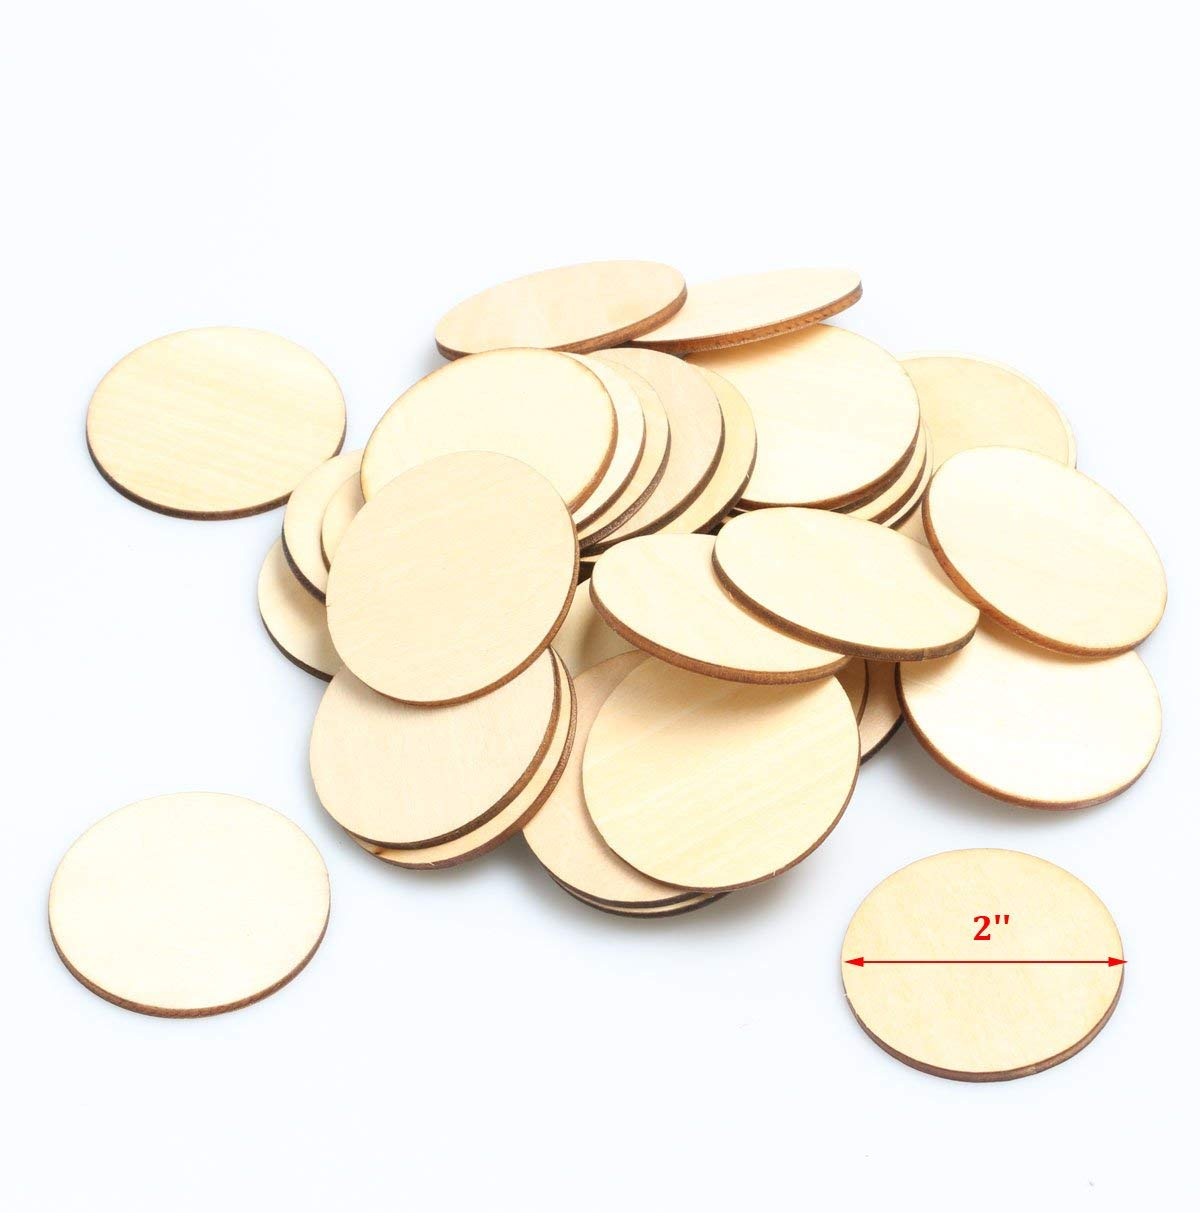 woodeni 2-Inch Unfinished Round Wooden Circles Blank Wood Cutout Slices Discs DIY Crafts 50pcs